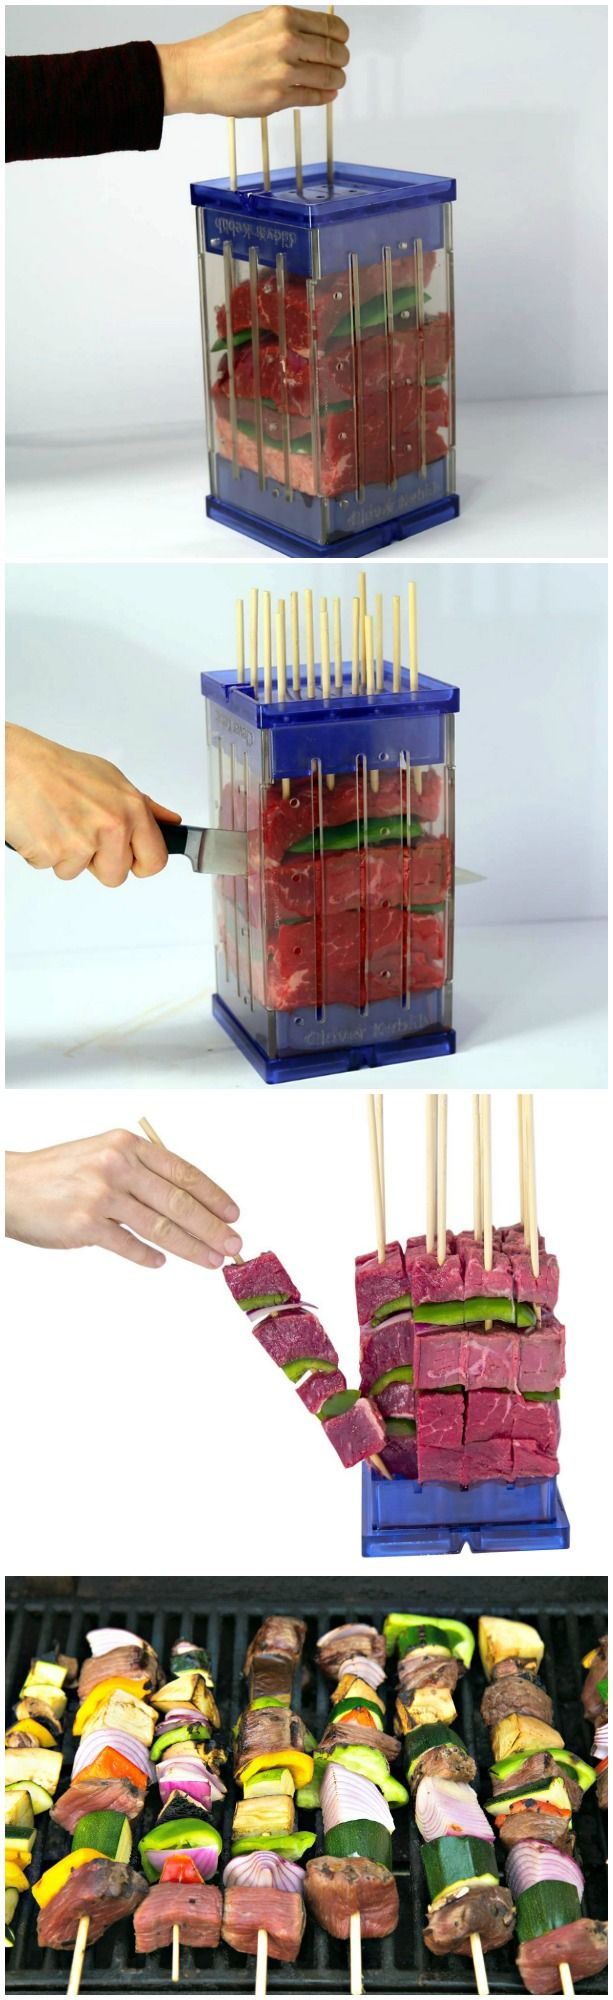 Clever Kebab allows you to quickly and easily make 16 perfect kebabs in just minutes, without the mess. Layer your ingredients, insert skewers and slice.